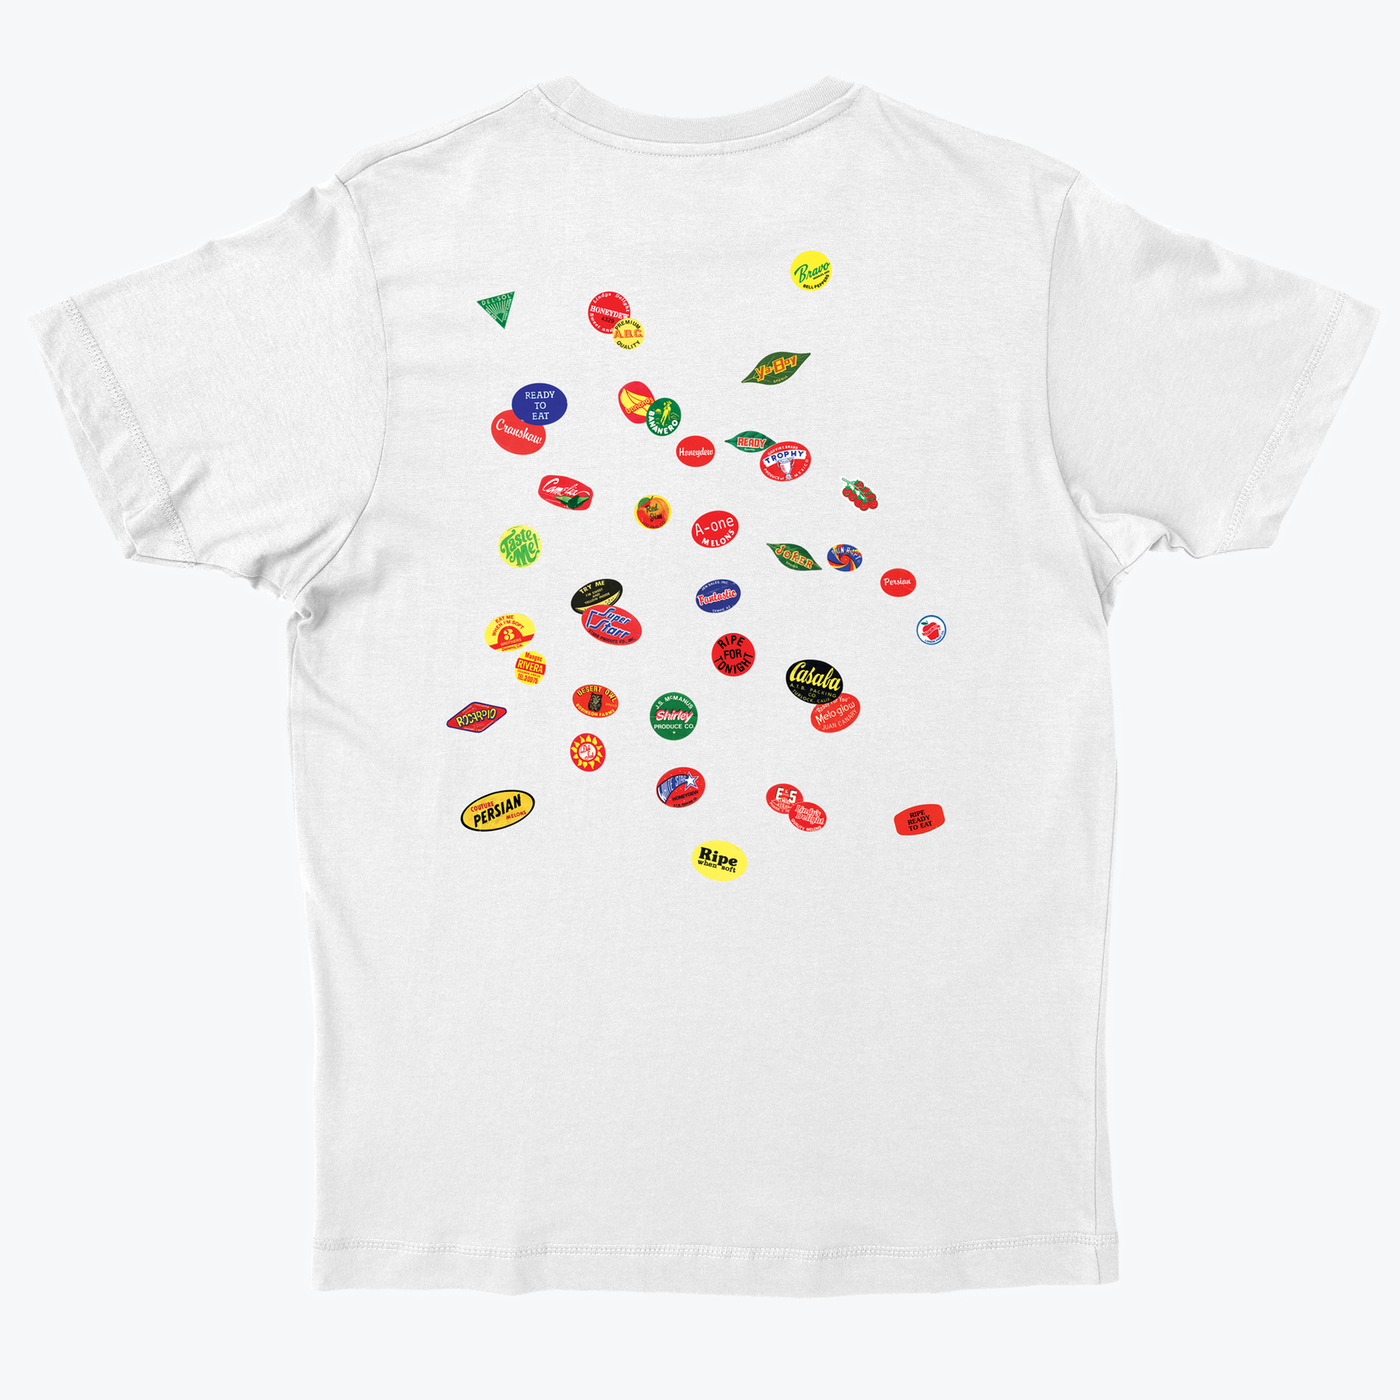 Reverse print on the 'Natural Snack' and 'Original Sticker' T-shirts